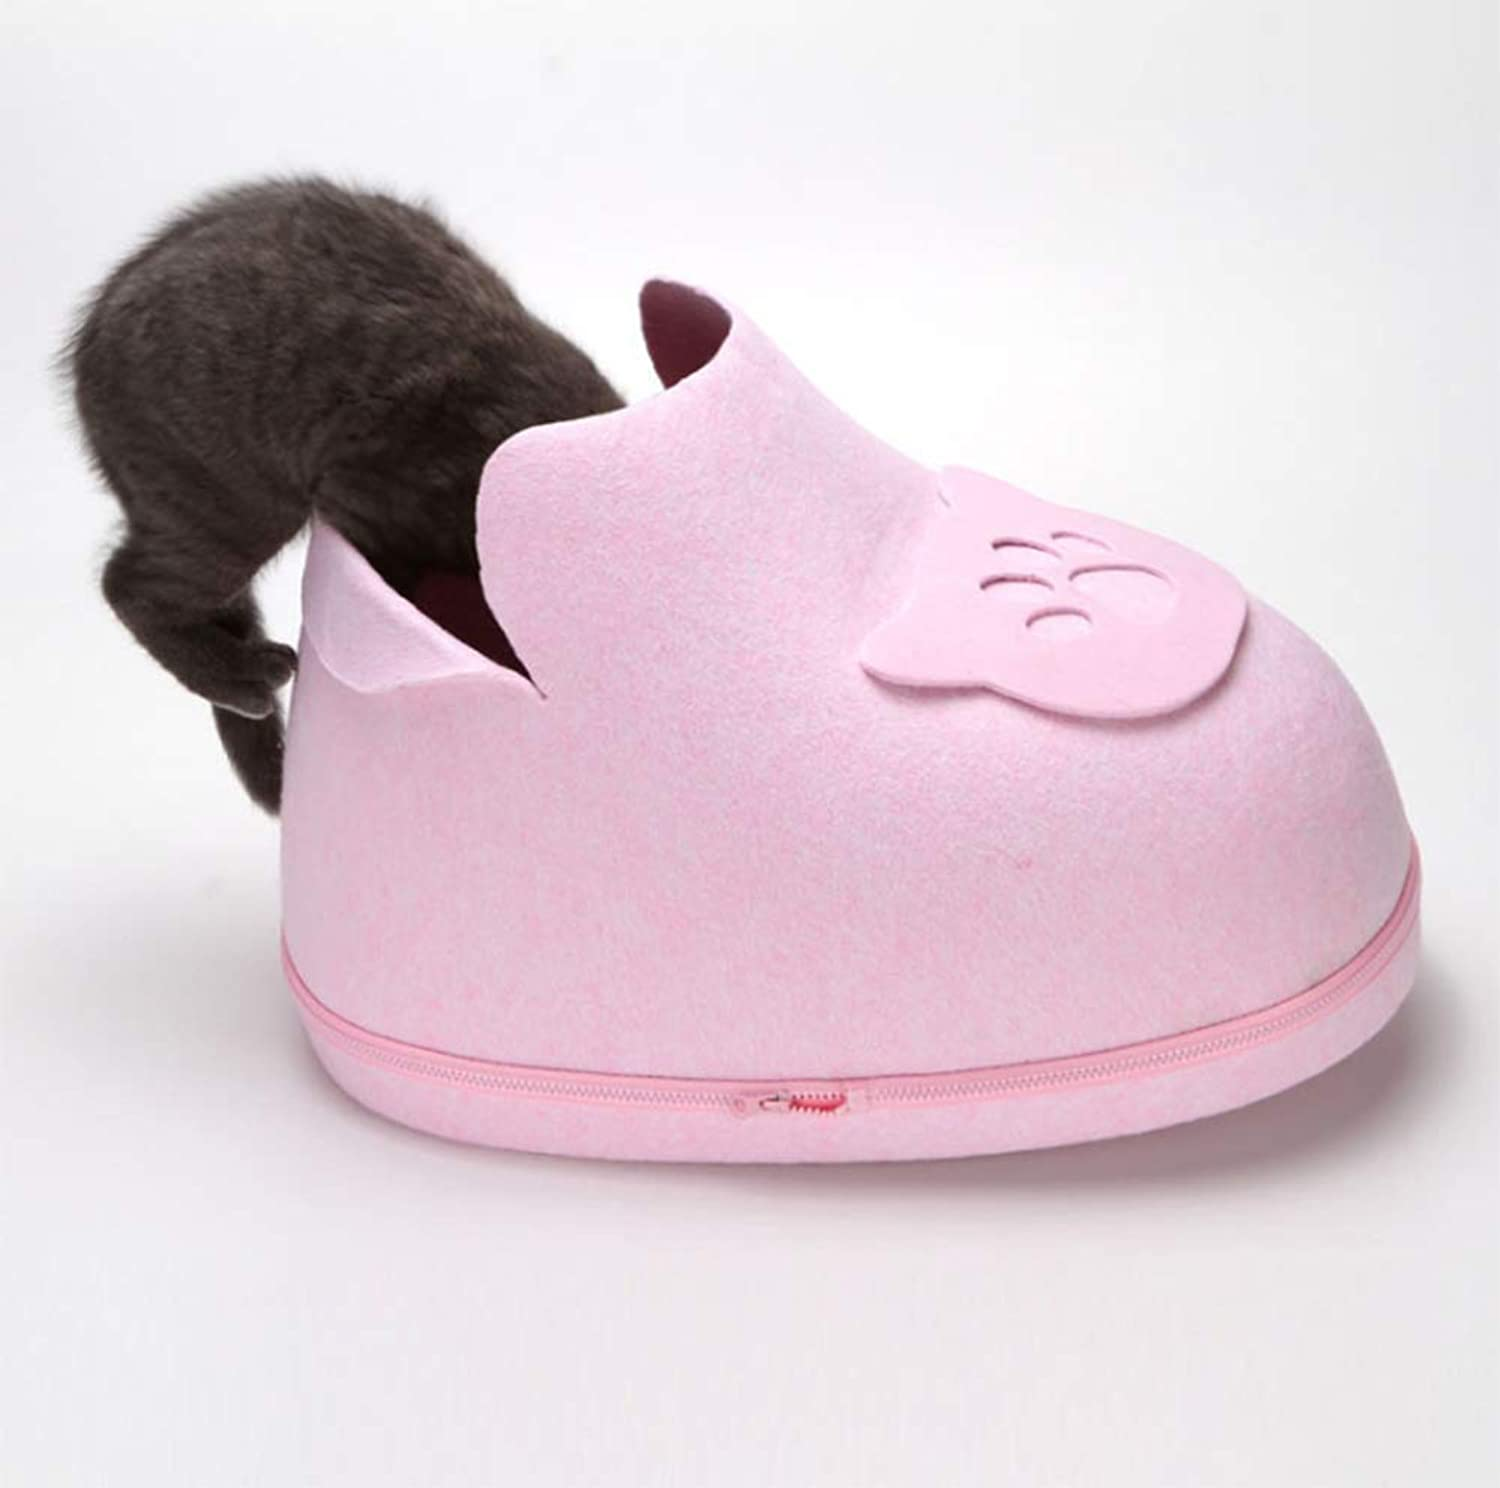 Cat Princess Bed Winter Winter Warm Washable pet Cute cat Litter shoes Kennel shoes cat Litter